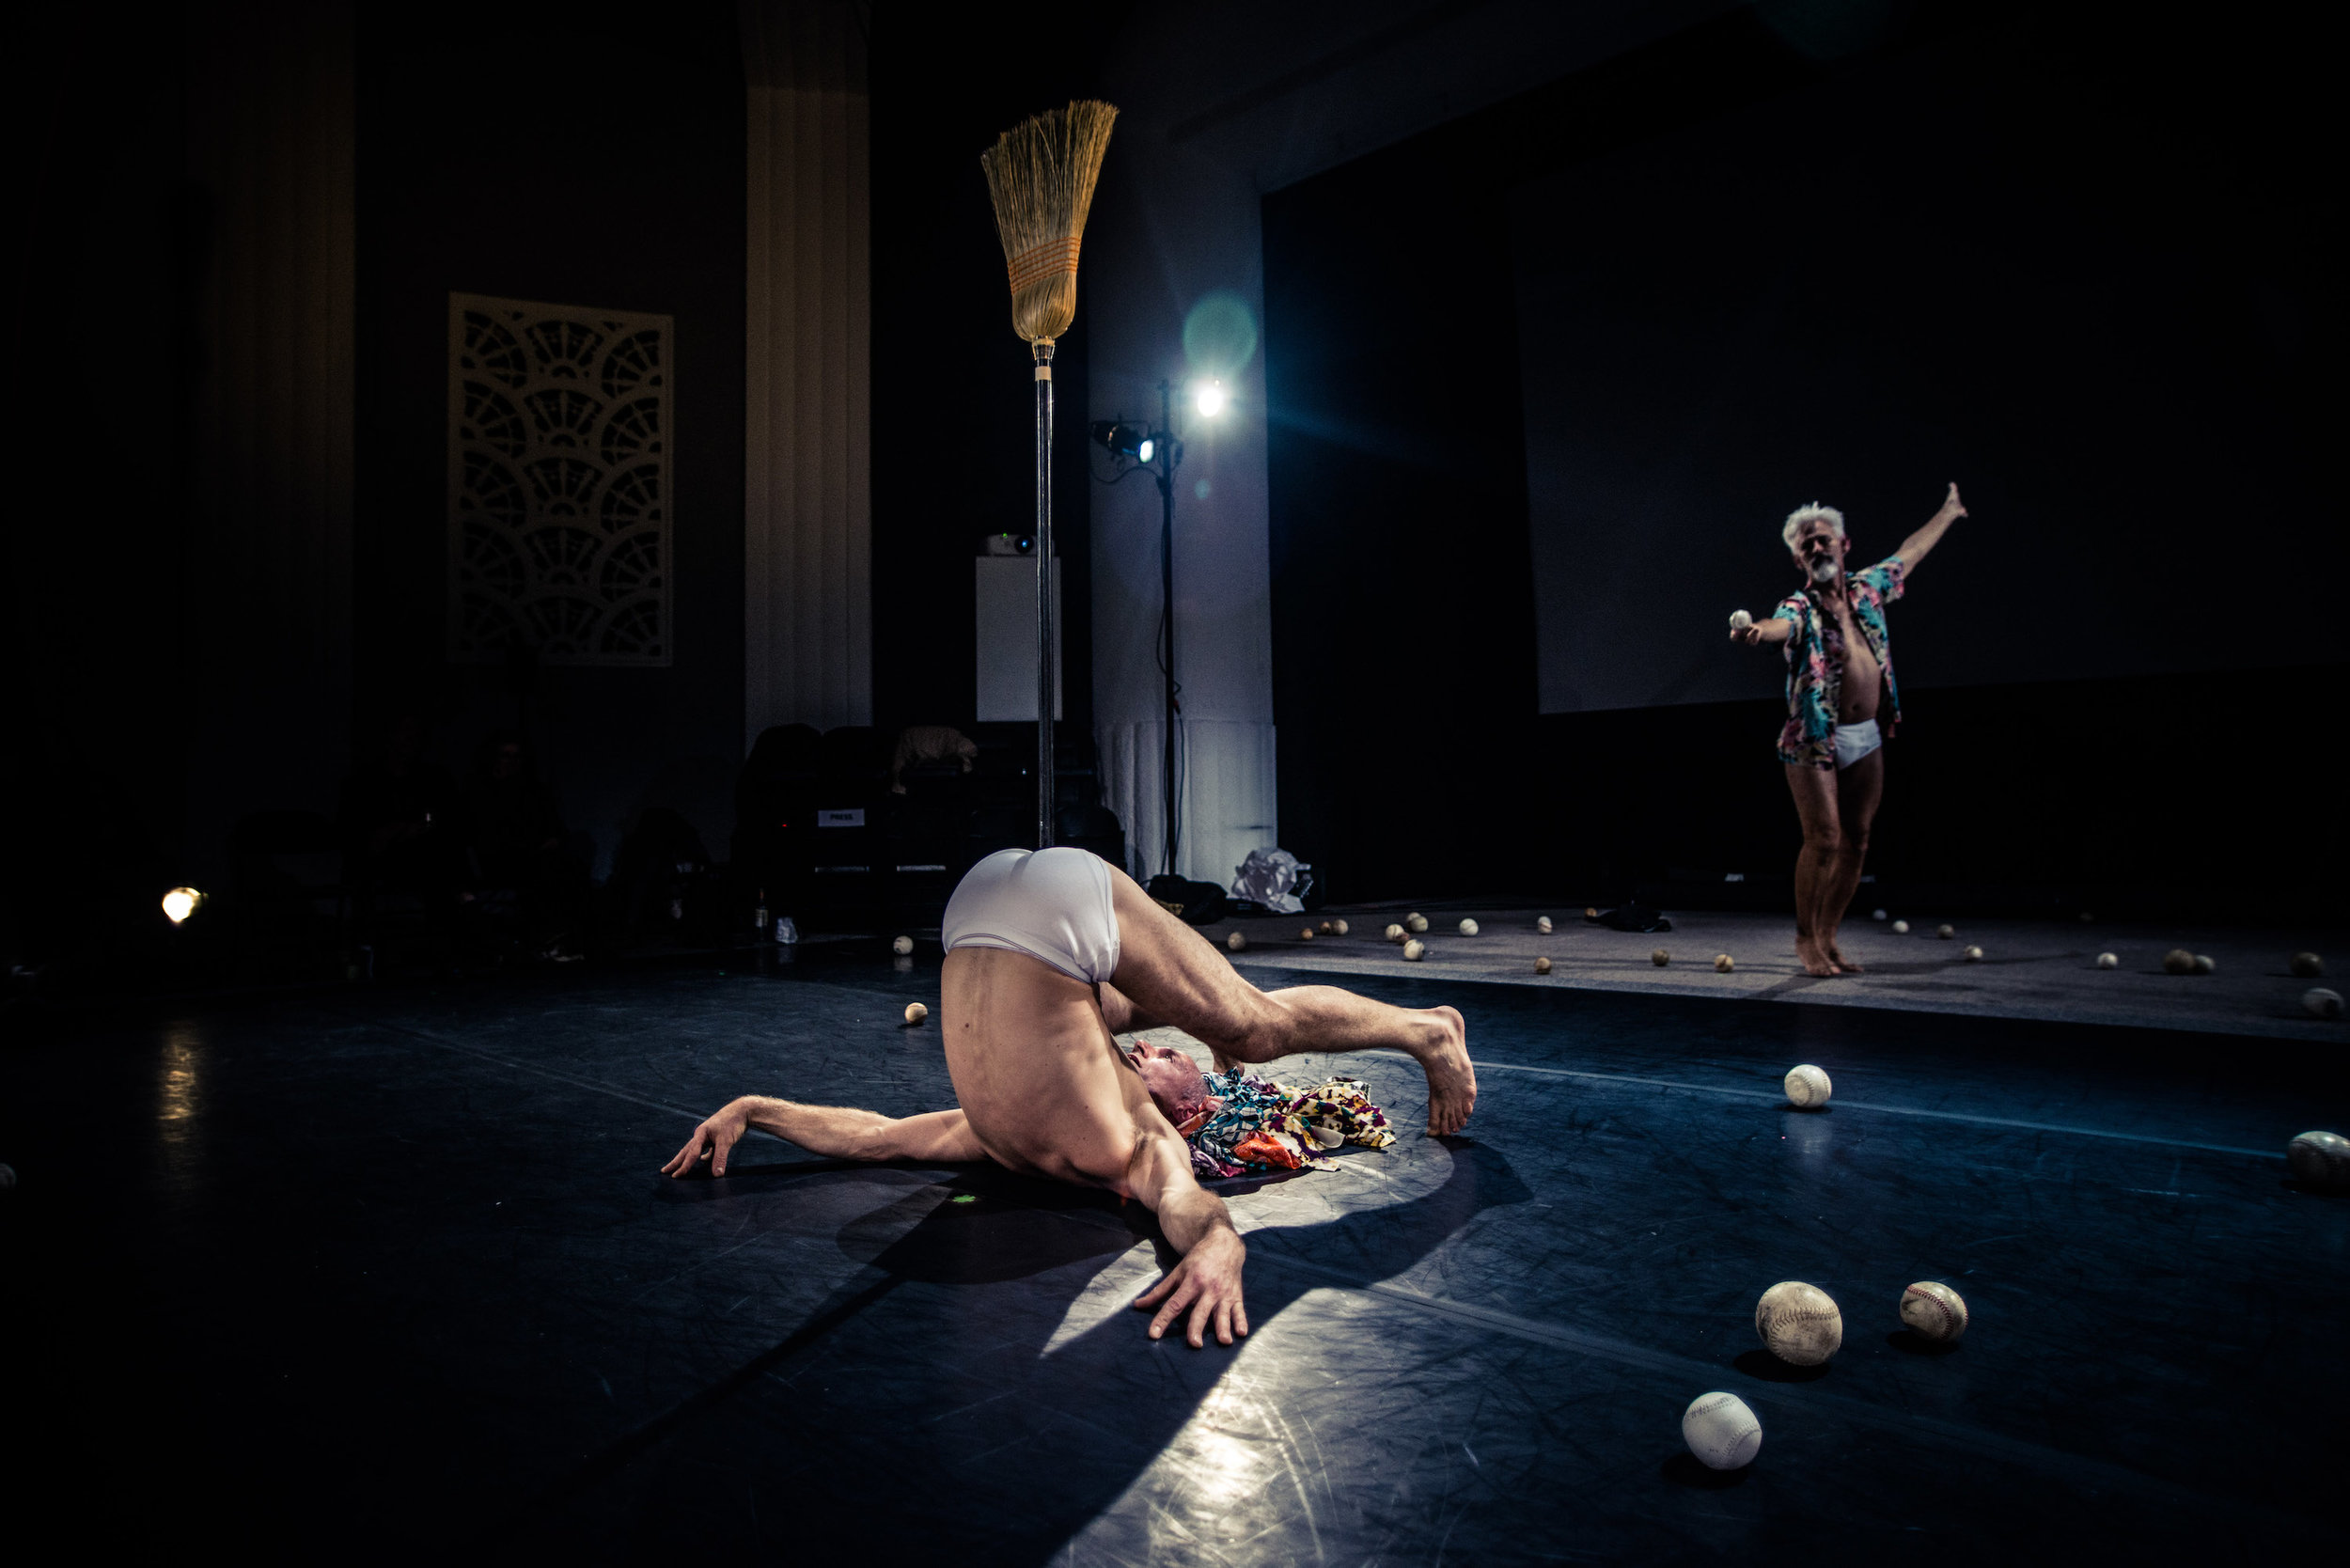 Curtis gestures with flourish toward Müller, who balances a broom from his anus, in  plow pose wearing white underwear. (photo: Robbie Sweeny)